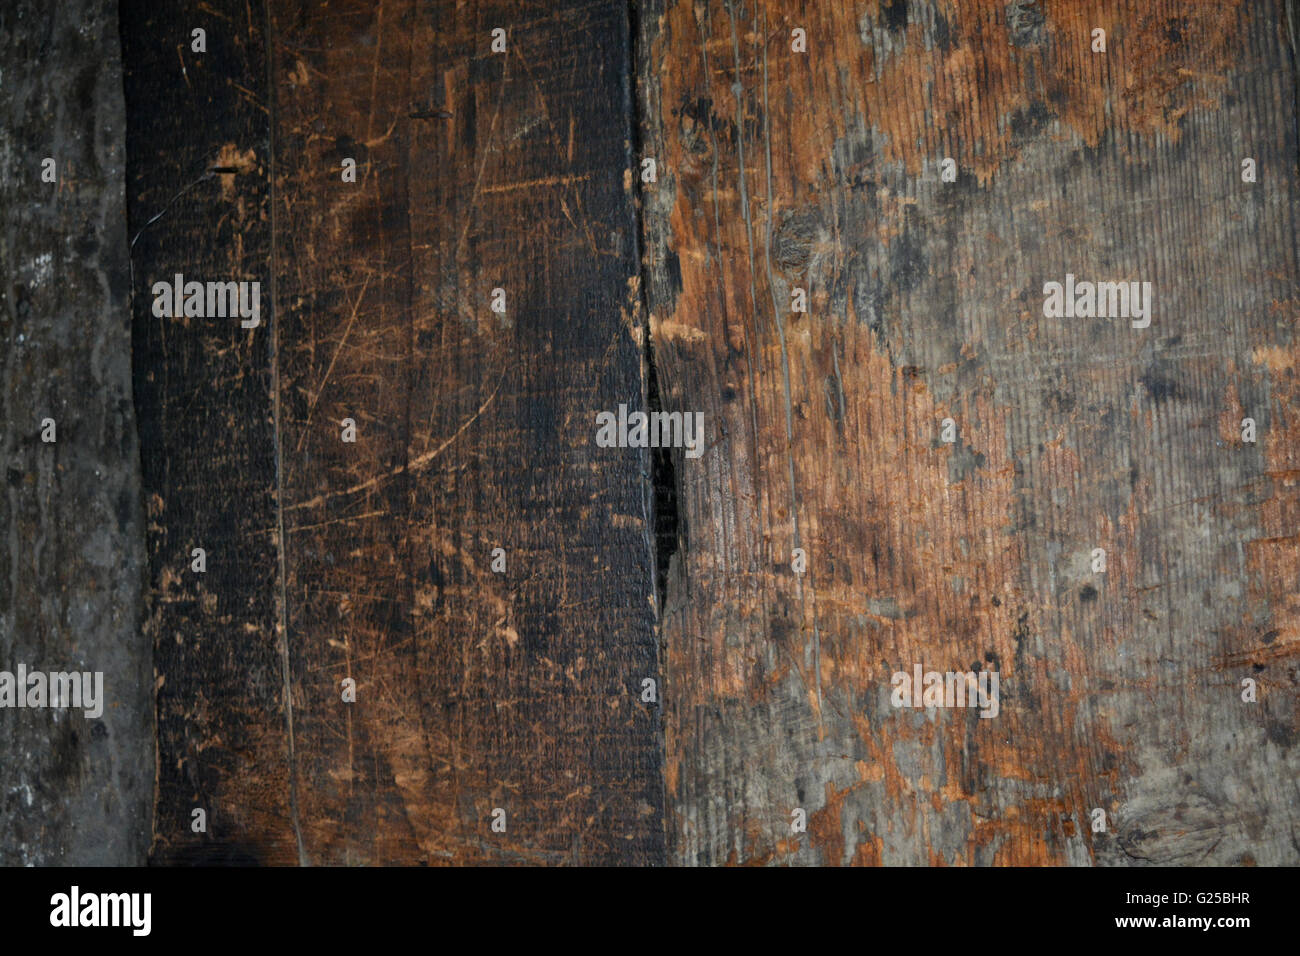 Old Vintage Rustic Wood Background Design